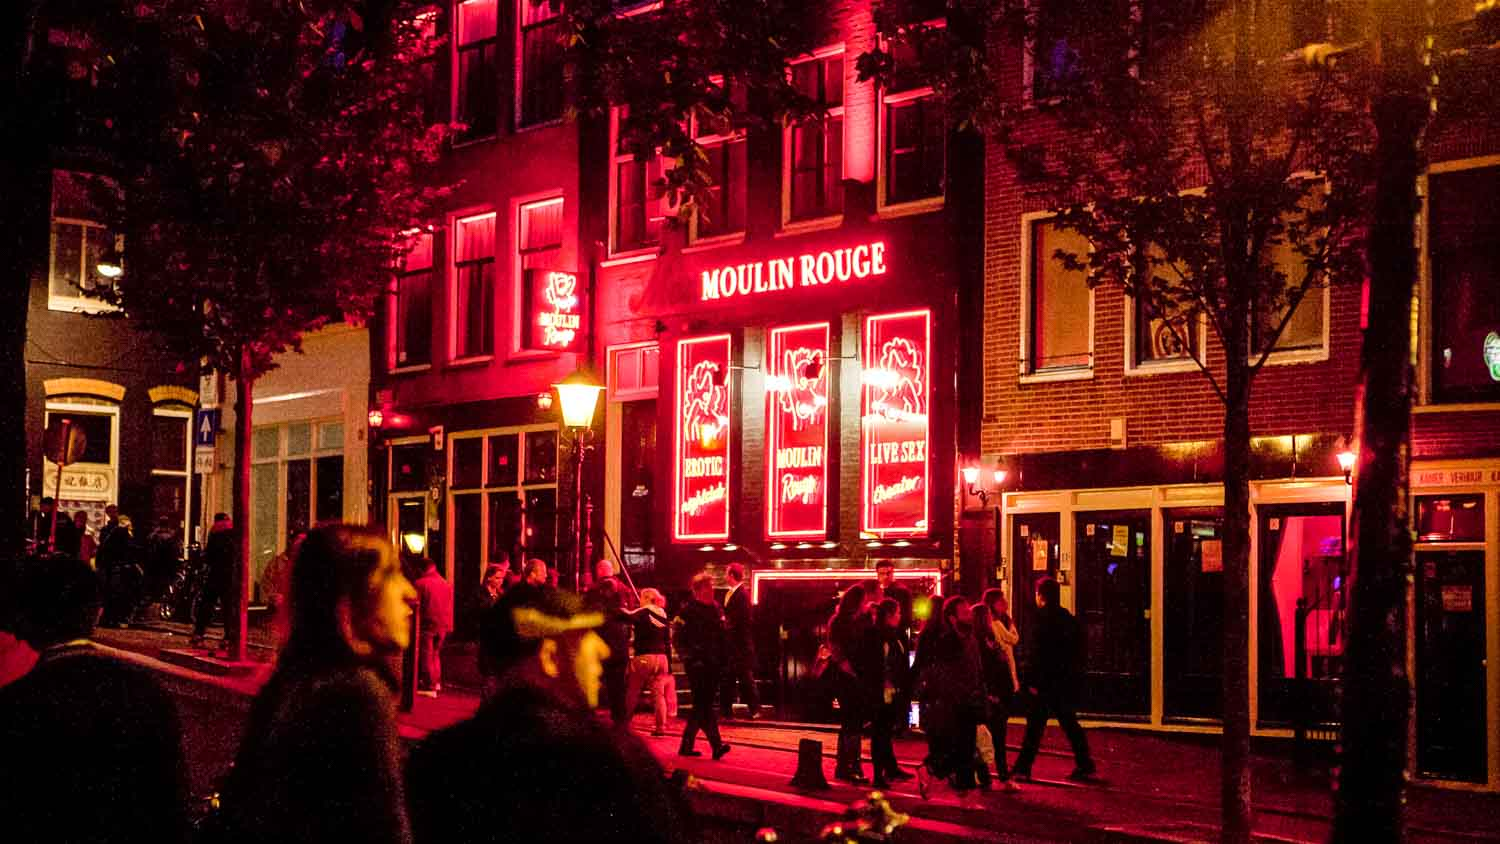 images of amsterdam red light district